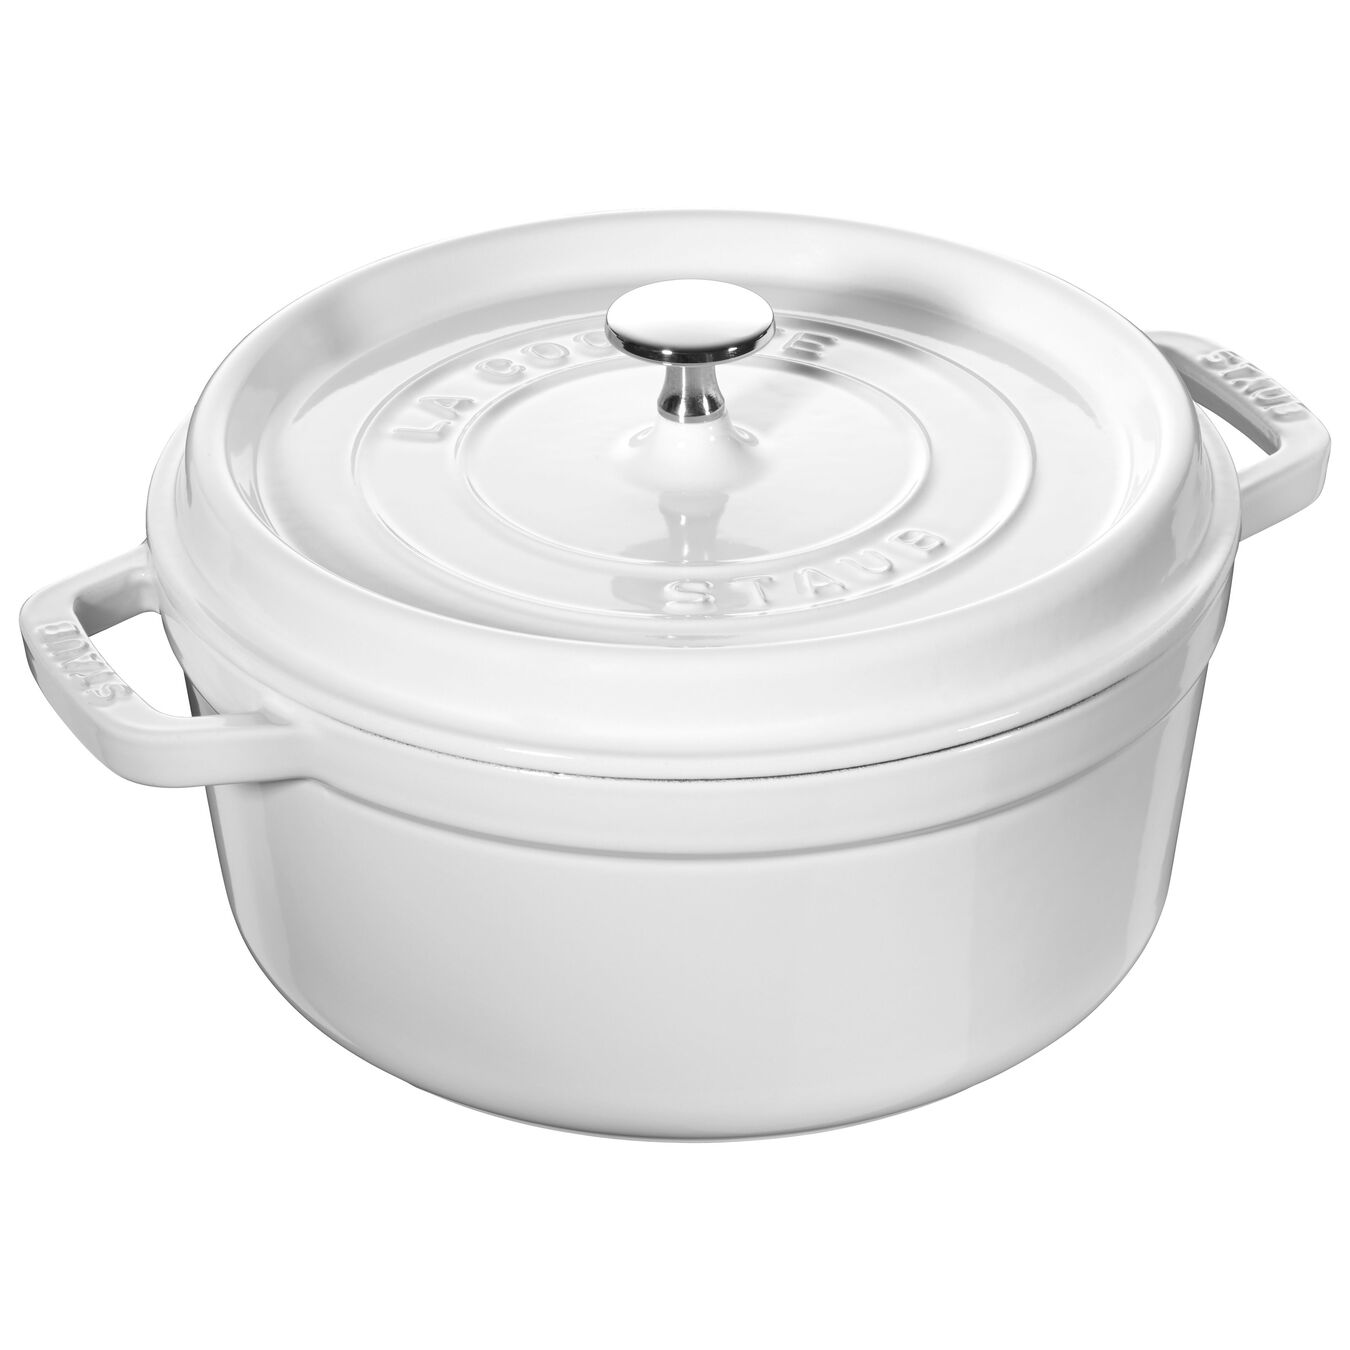 82427 / 1, round, Cocotte, white,,large 1